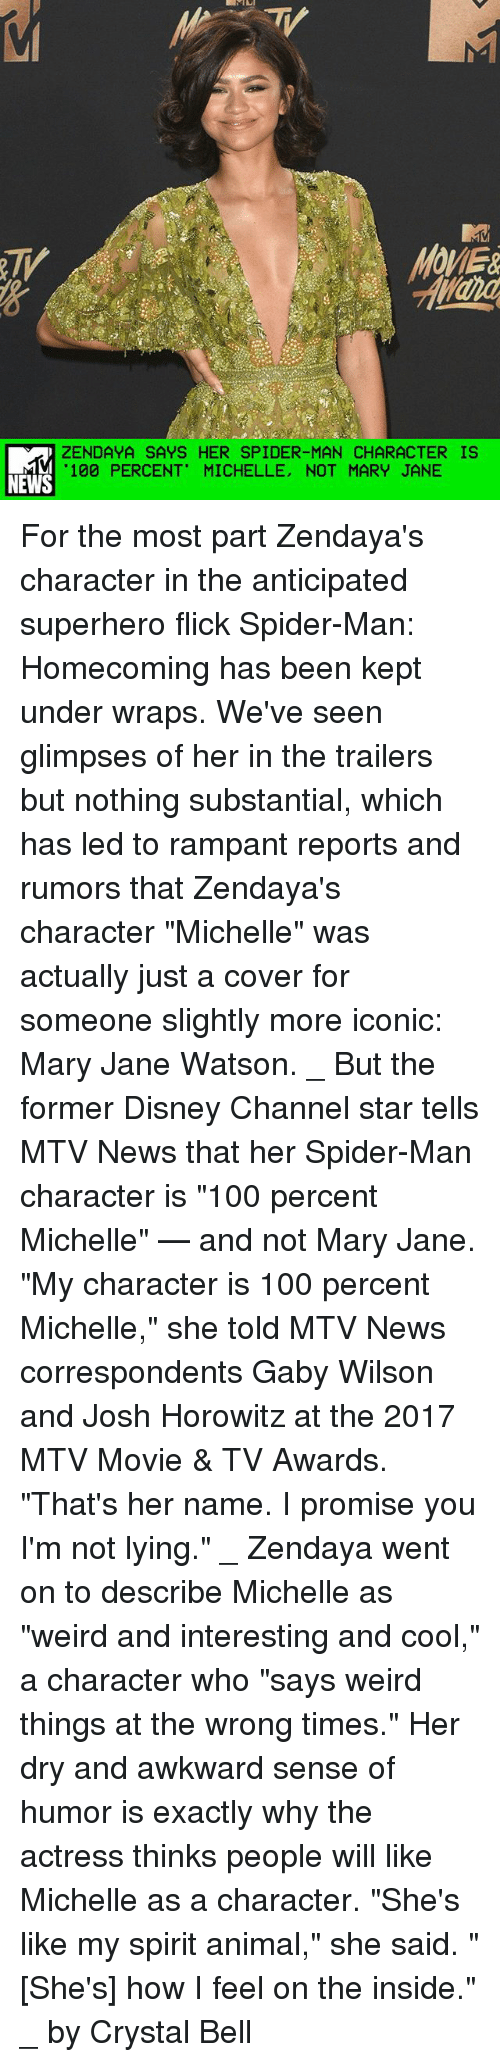 """Anaconda, Disney, and Memes: OMER  ZENDAYA SAYS HER SPIDER-MAN CHARACTER IS  100 PERCENT"""" MICHELLE, NOT MARY JANE  NEWS For the most part Zendaya's character in the anticipated superhero flick Spider-Man: Homecoming has been kept under wraps. We've seen glimpses of her in the trailers but nothing substantial, which has led to rampant reports and rumors that Zendaya's character """"Michelle"""" was actually just a cover for someone slightly more iconic: Mary Jane Watson. _ But the former Disney Channel star tells MTV News that her Spider-Man character is """"100 percent Michelle"""" — and not Mary Jane. """"My character is 100 percent Michelle,"""" she told MTV News correspondents Gaby Wilson and Josh Horowitz at the 2017 MTV Movie & TV Awards. """"That's her name. I promise you I'm not lying."""" _ Zendaya went on to describe Michelle as """"weird and interesting and cool,"""" a character who """"says weird things at the wrong times."""" Her dry and awkward sense of humor is exactly why the actress thinks people will like Michelle as a character. """"She's like my spirit animal,"""" she said. """"[She's] how I feel on the inside."""" _ by Crystal Bell"""